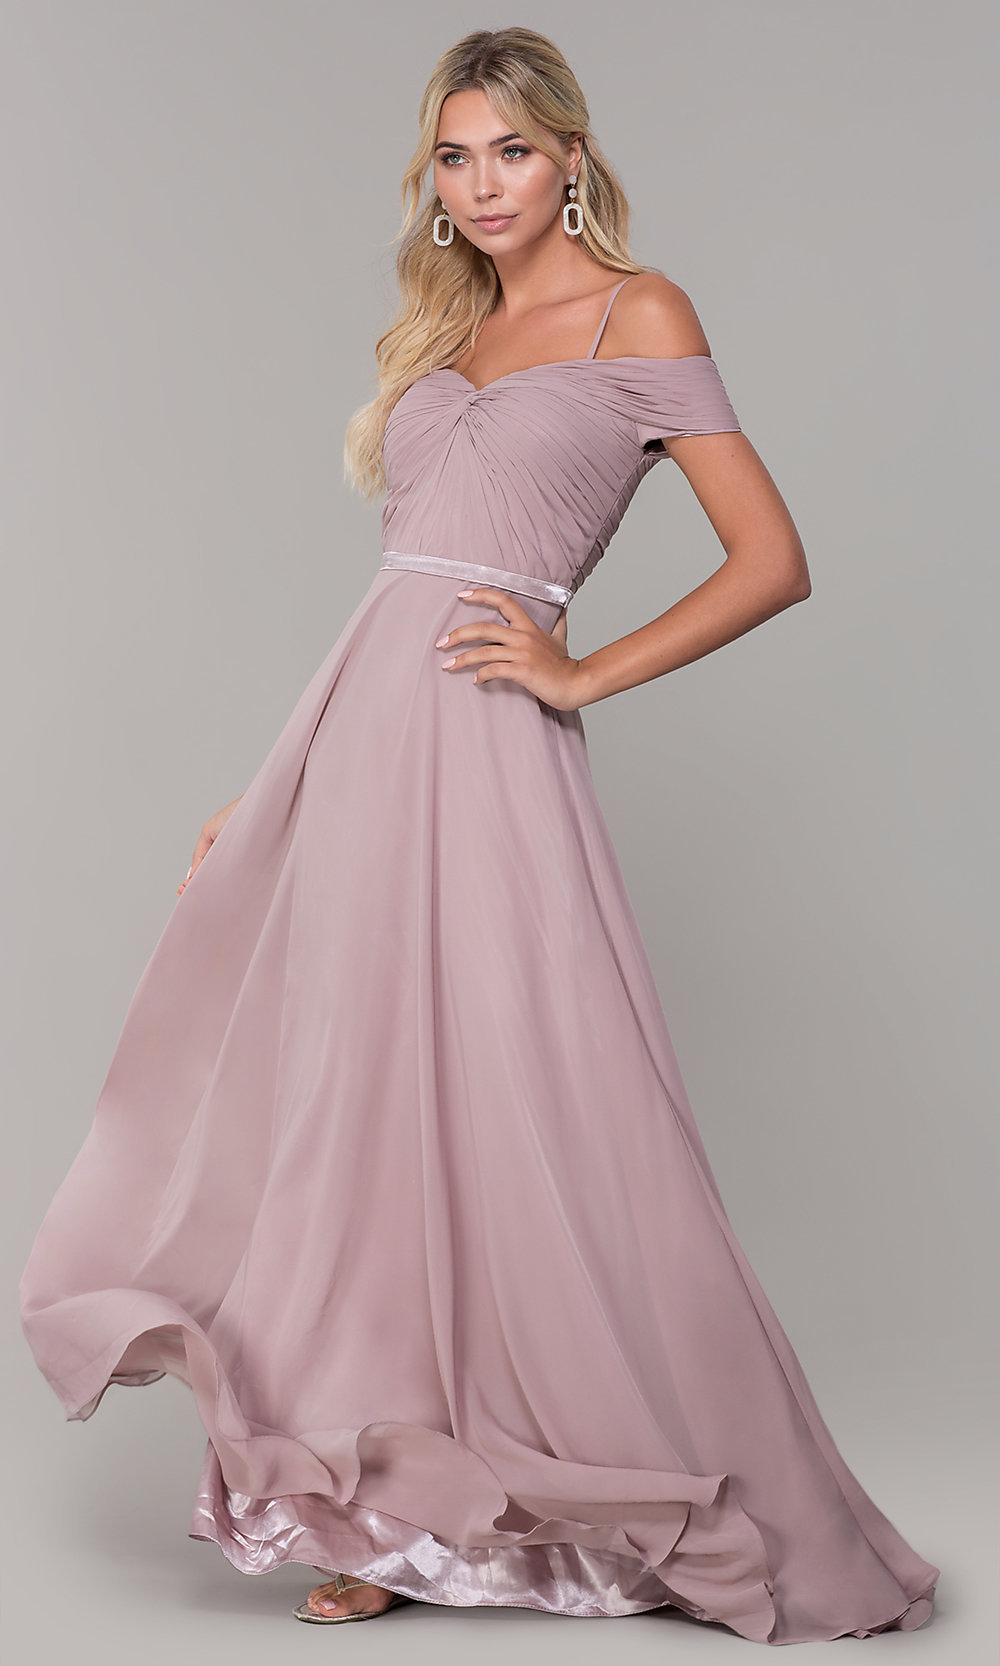 7c9e640c2db2ad Ruched-Bodice Long Off-the-Shoulder Purple Prom Dress